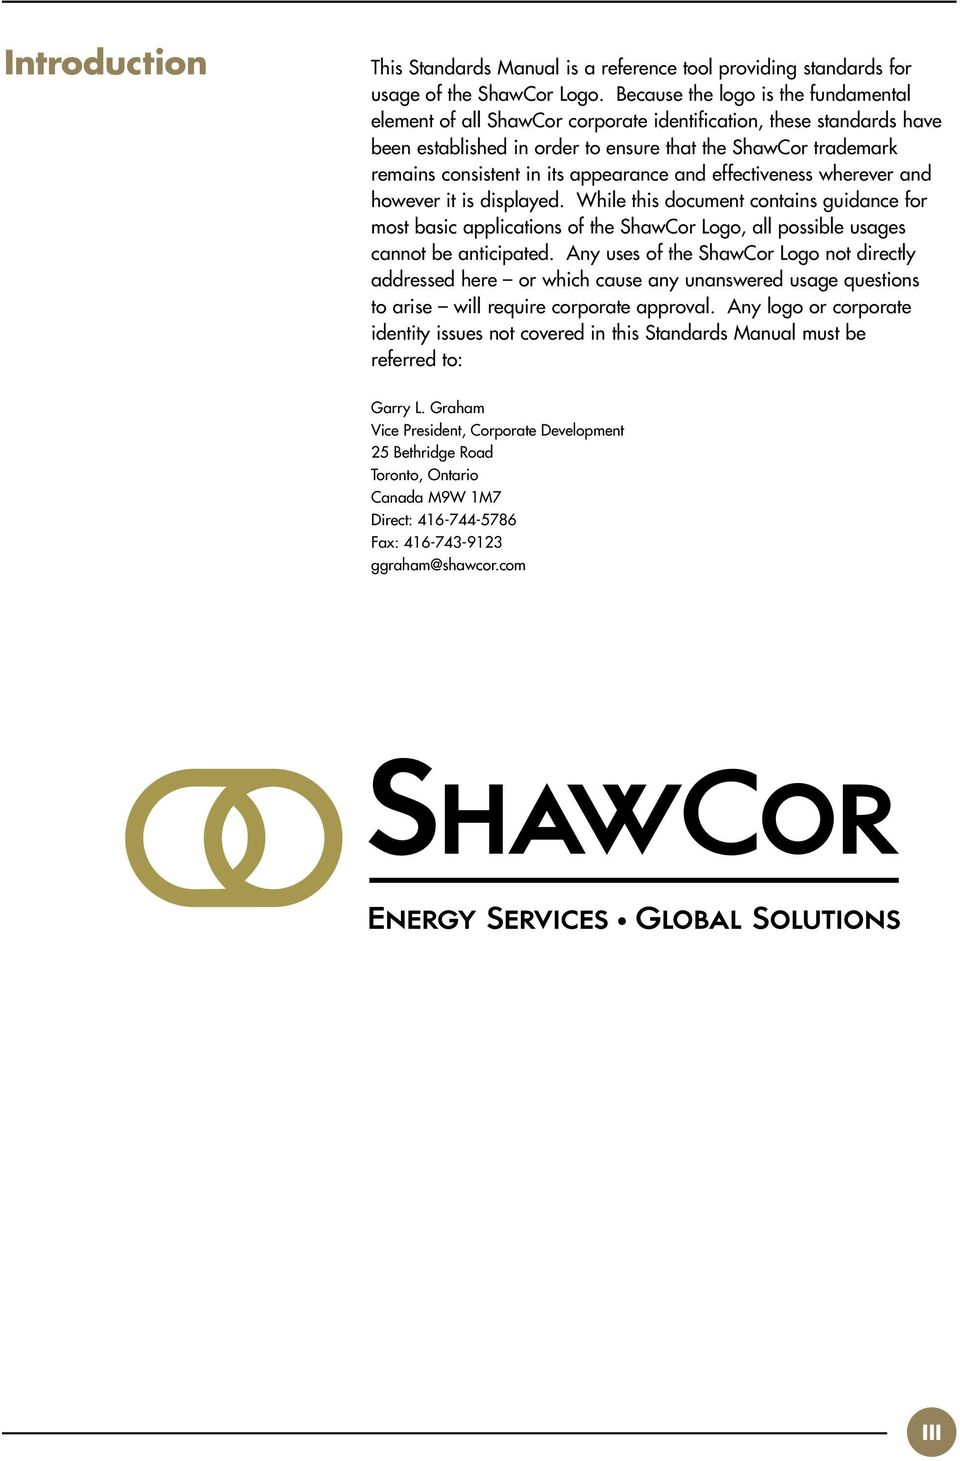 appearance and effectiveness wherever and however it is displayed. While this document contains guidance for most basic applications of the ShawCor Logo, all possible usages cannot be anticipated.